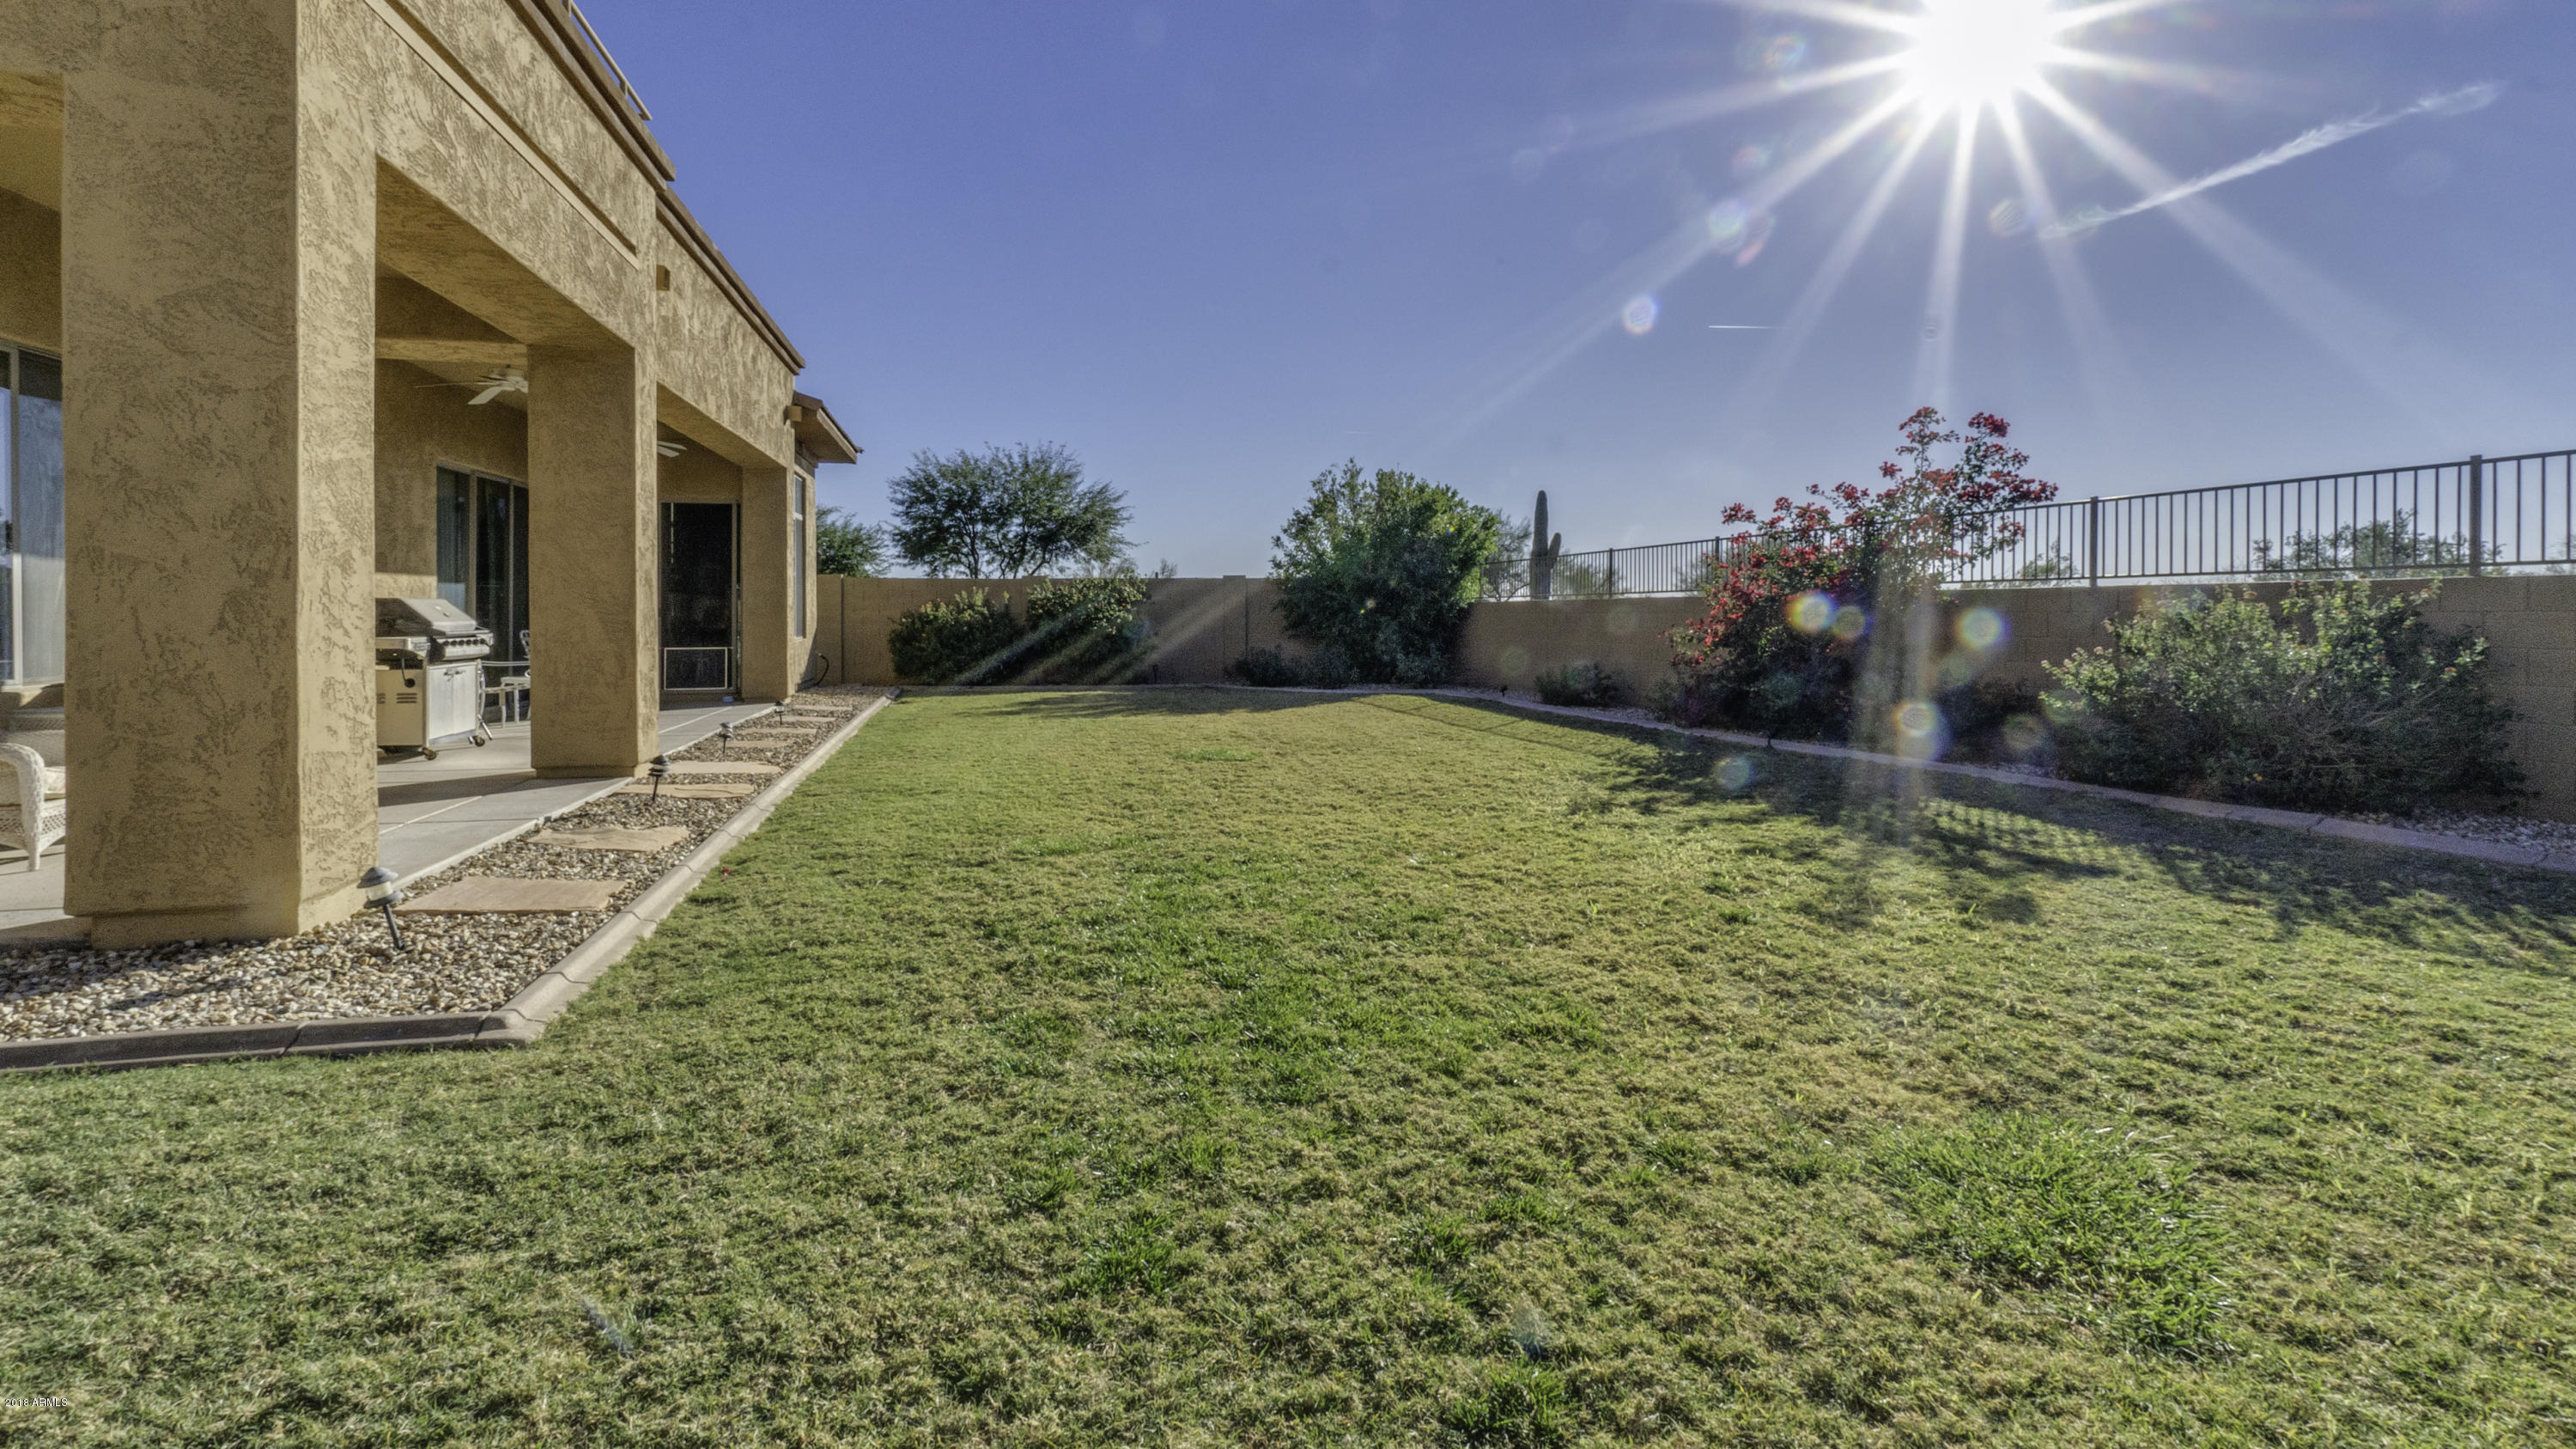 MLS 5848781 8035 E Twisted Leaf Drive, Gold Canyon, AZ 85118 Gold Canyon AZ Superstition Foothills